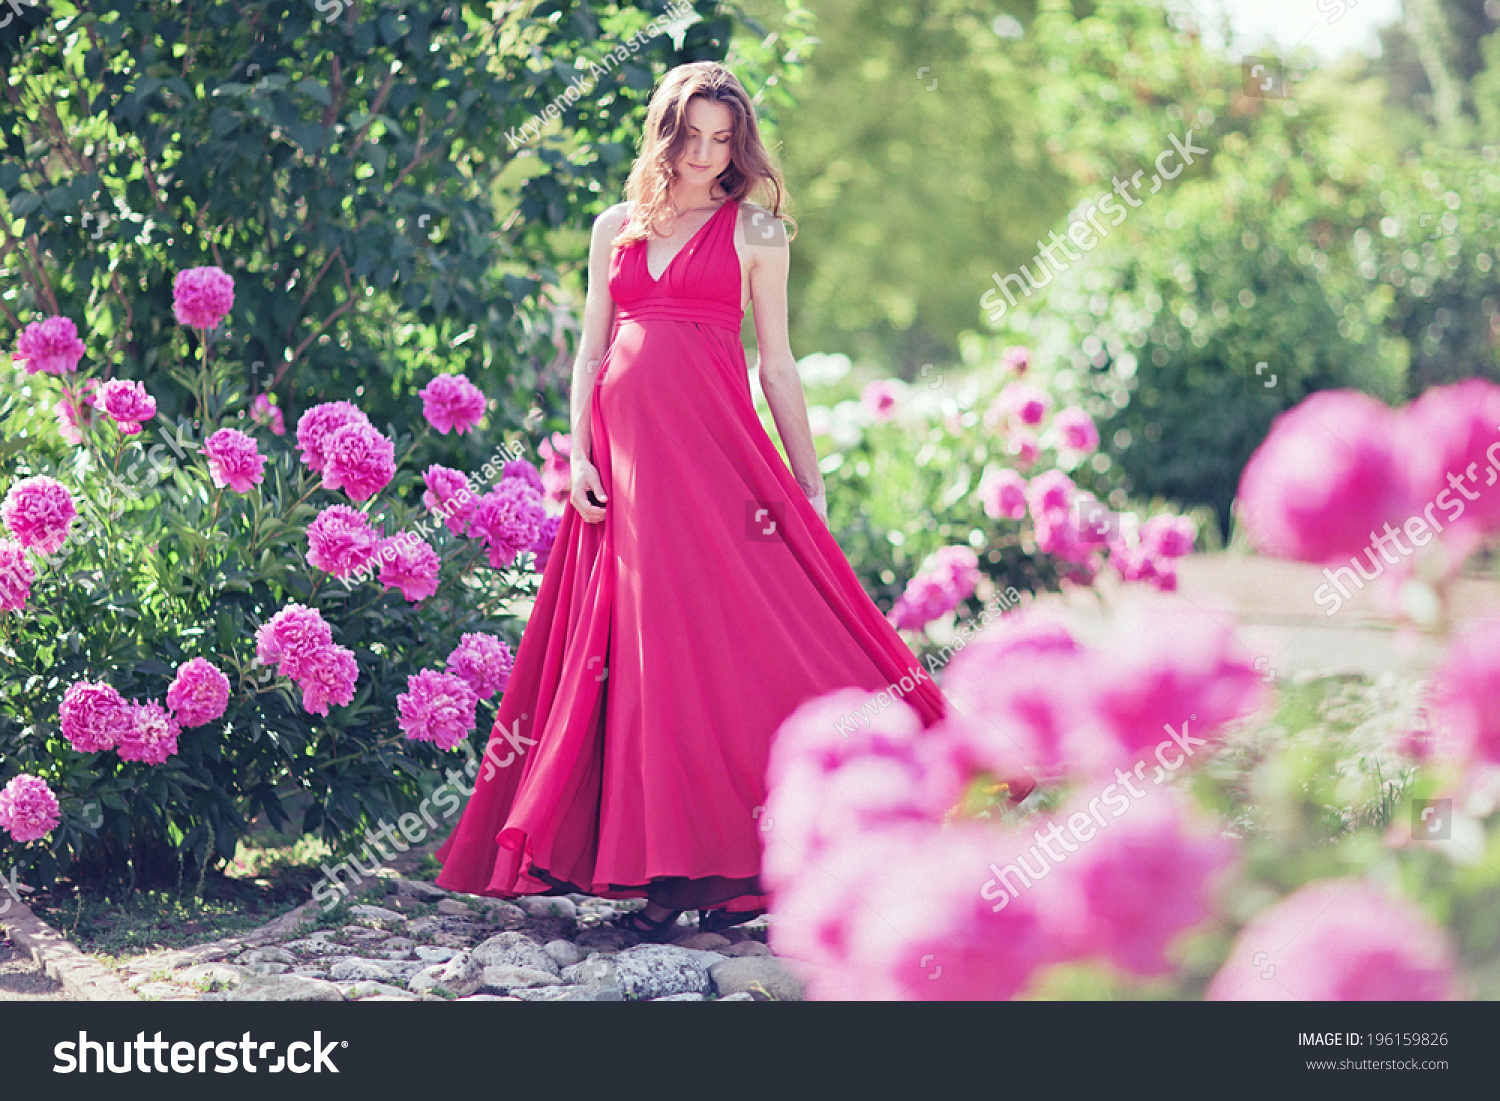 Pregnant woman in blooming garden of peony stock photo for Gardening while pregnant